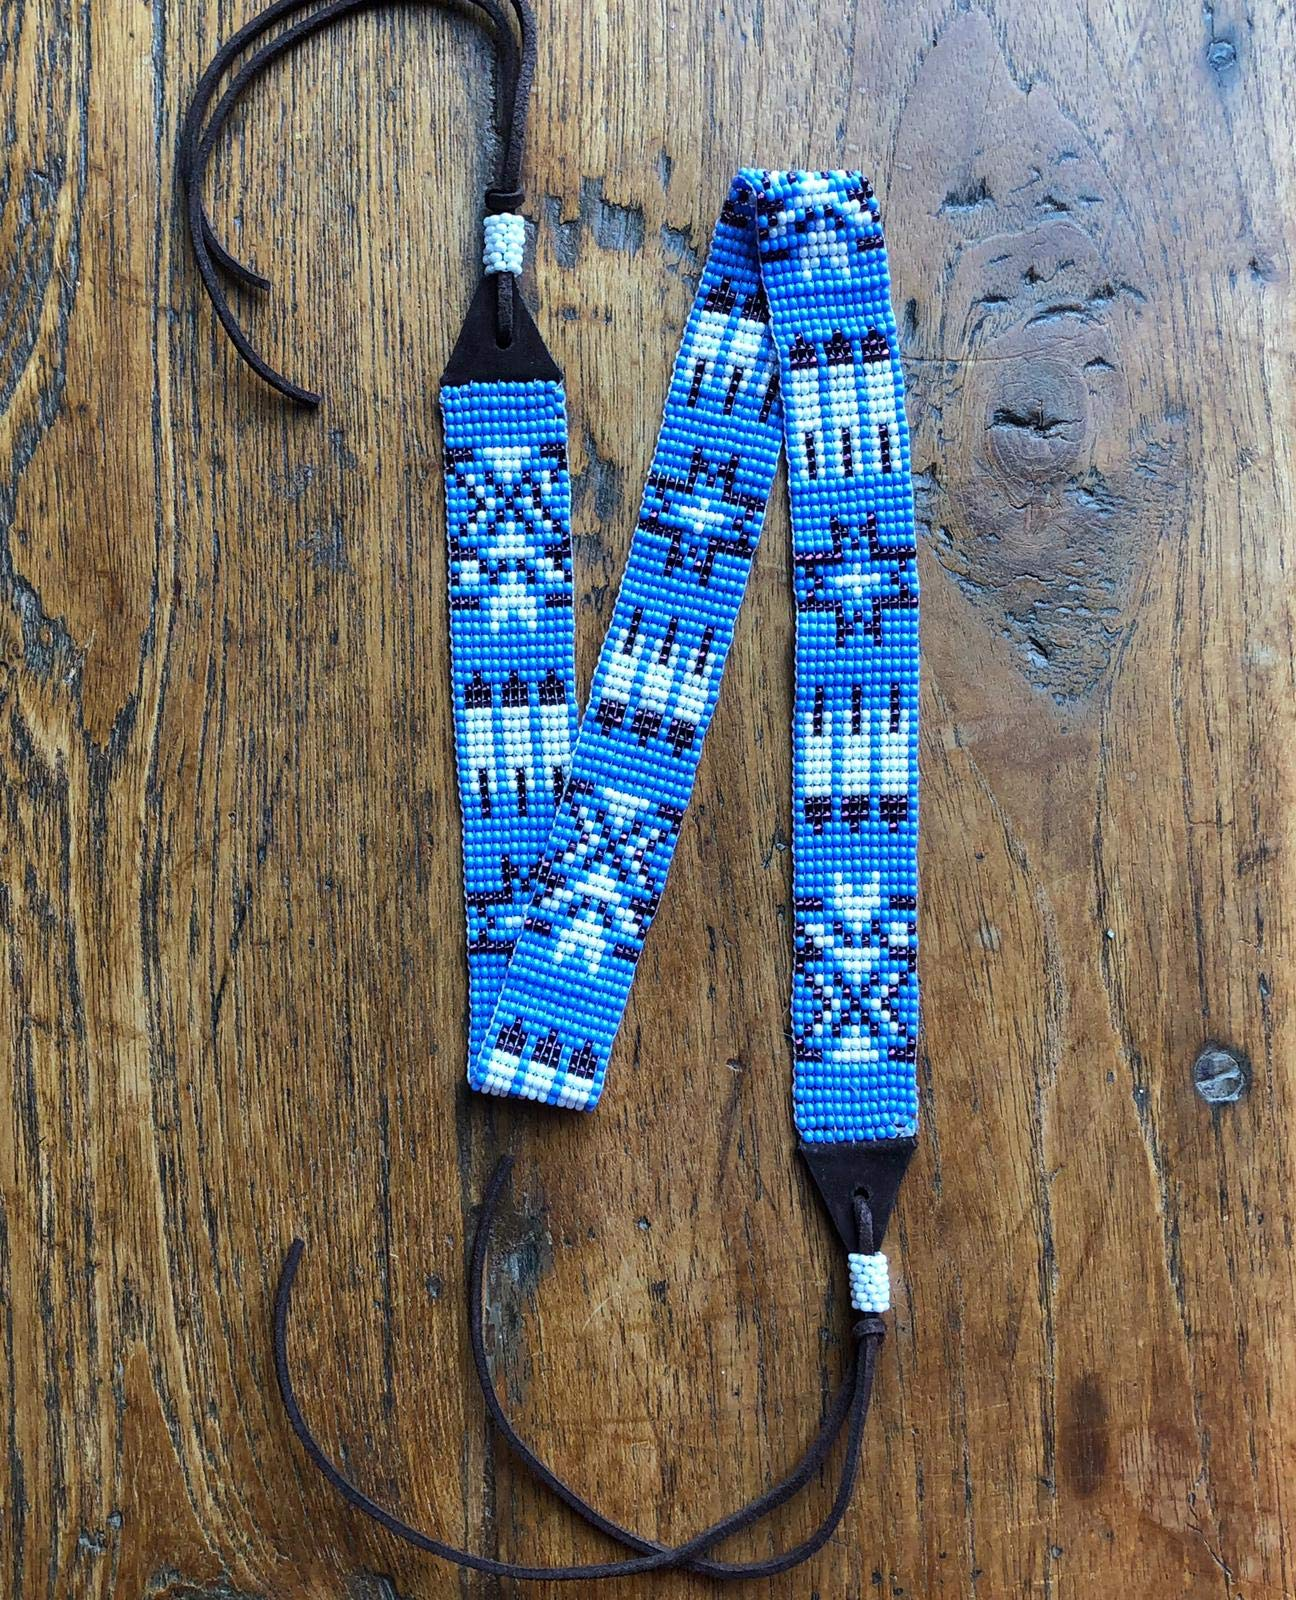 Mayan Arts Hat Band, Hatbands for Men and Women, Leather Straps, Cowboy Beaded Bands, White, Blue Paisley, Handmade in Guatemala 7/8'' X 21'' by Mayan Arts (Image #4)